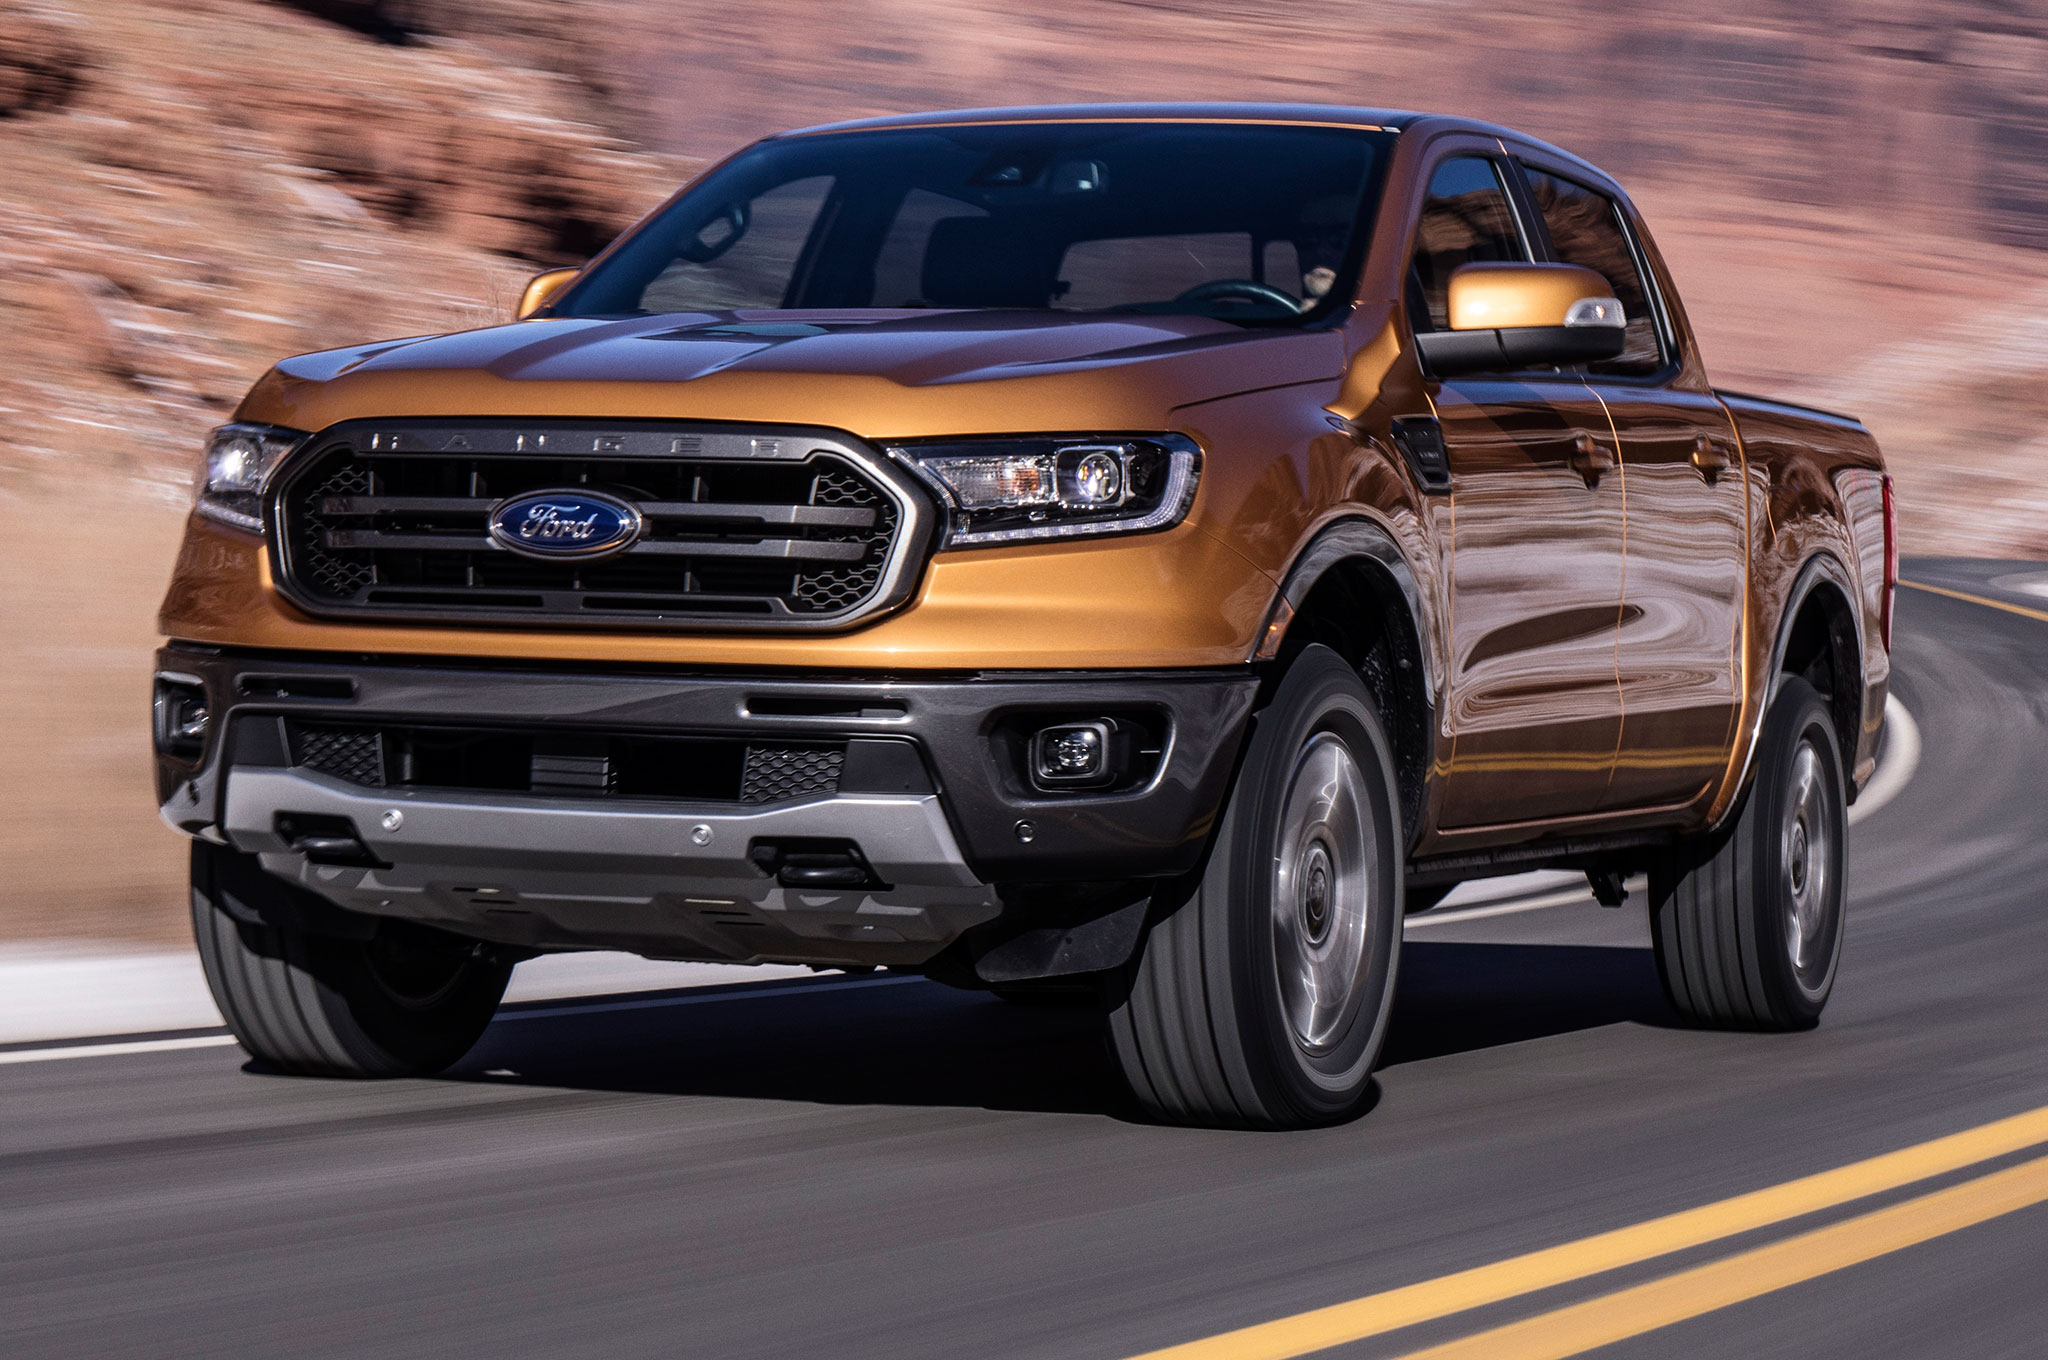 2019 Ford Ranger Front View In Motion Around Curve